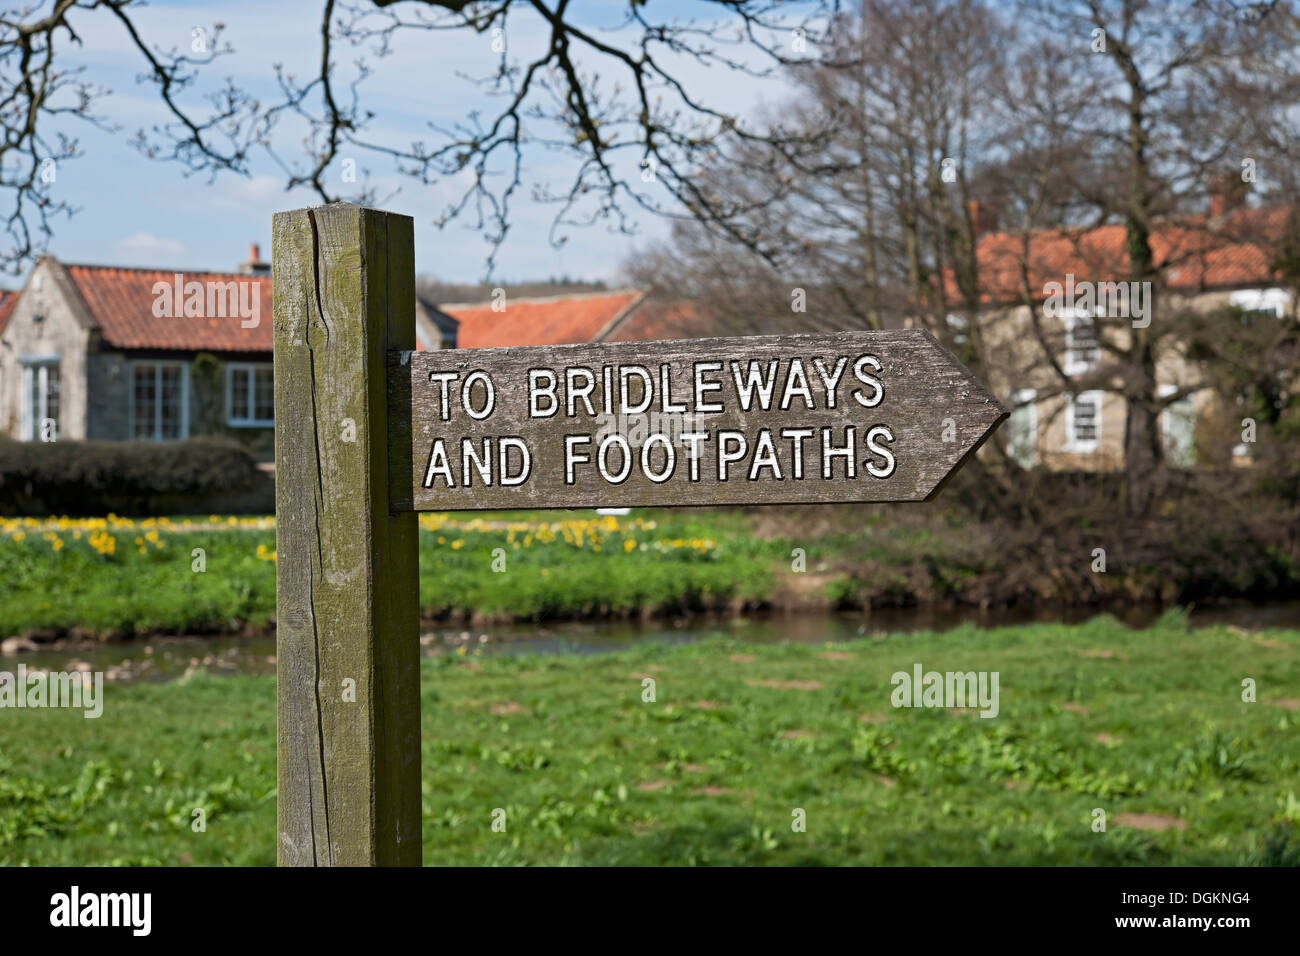 Wooden signpost pointing to bridleways and footpaths. - Stock Image